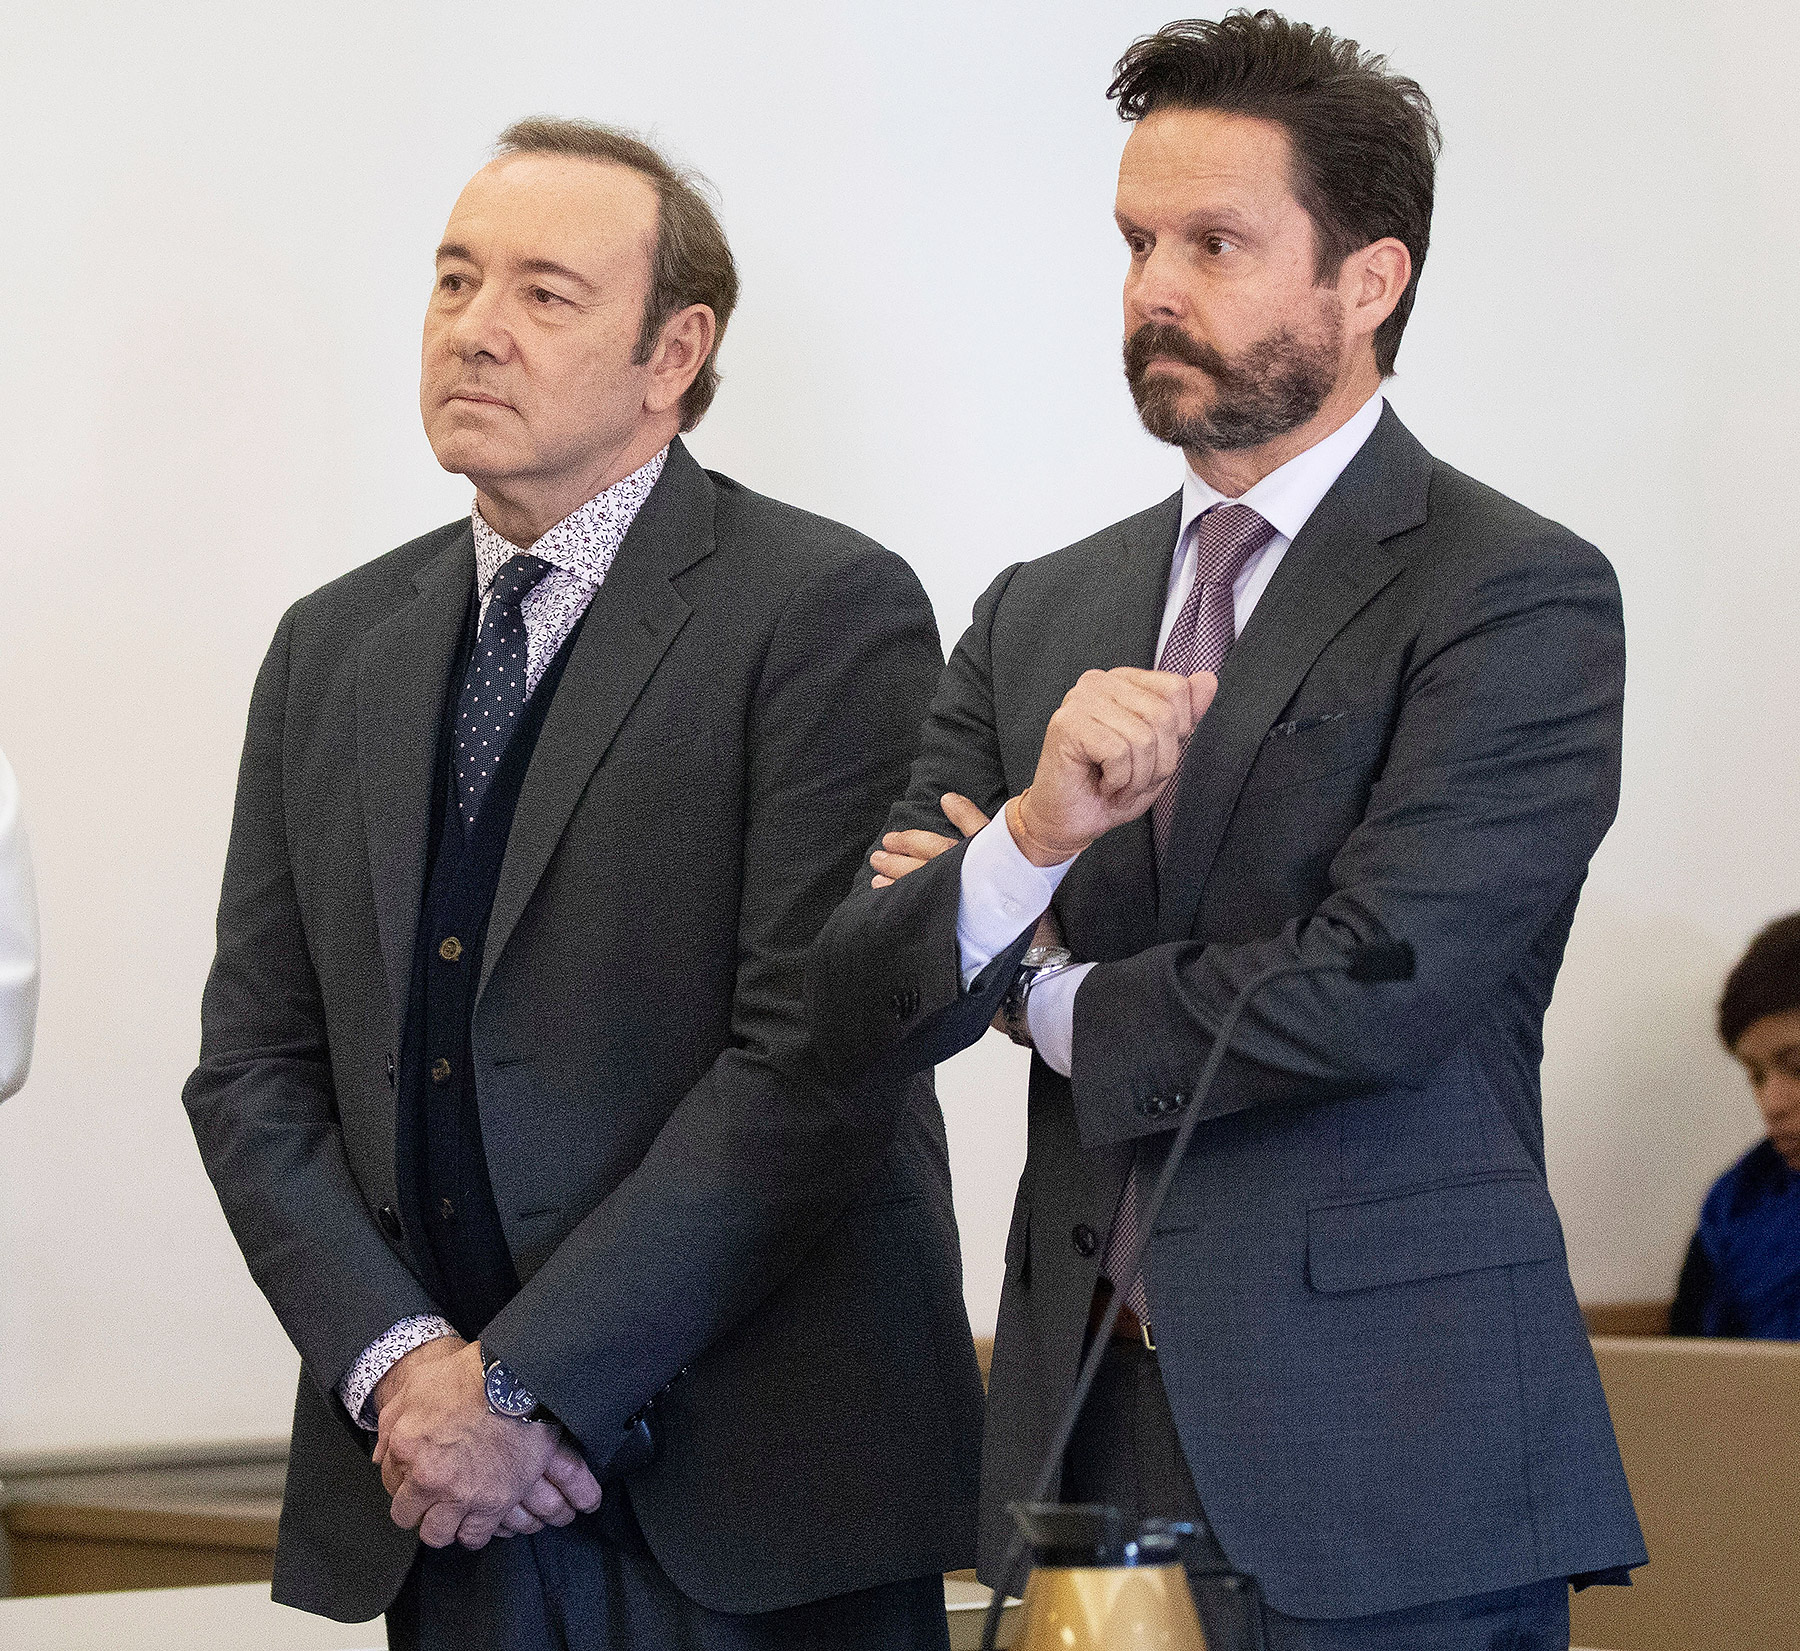 Actor Kevin Spacey at court in Nantucket, USA - 07 Jan 2019